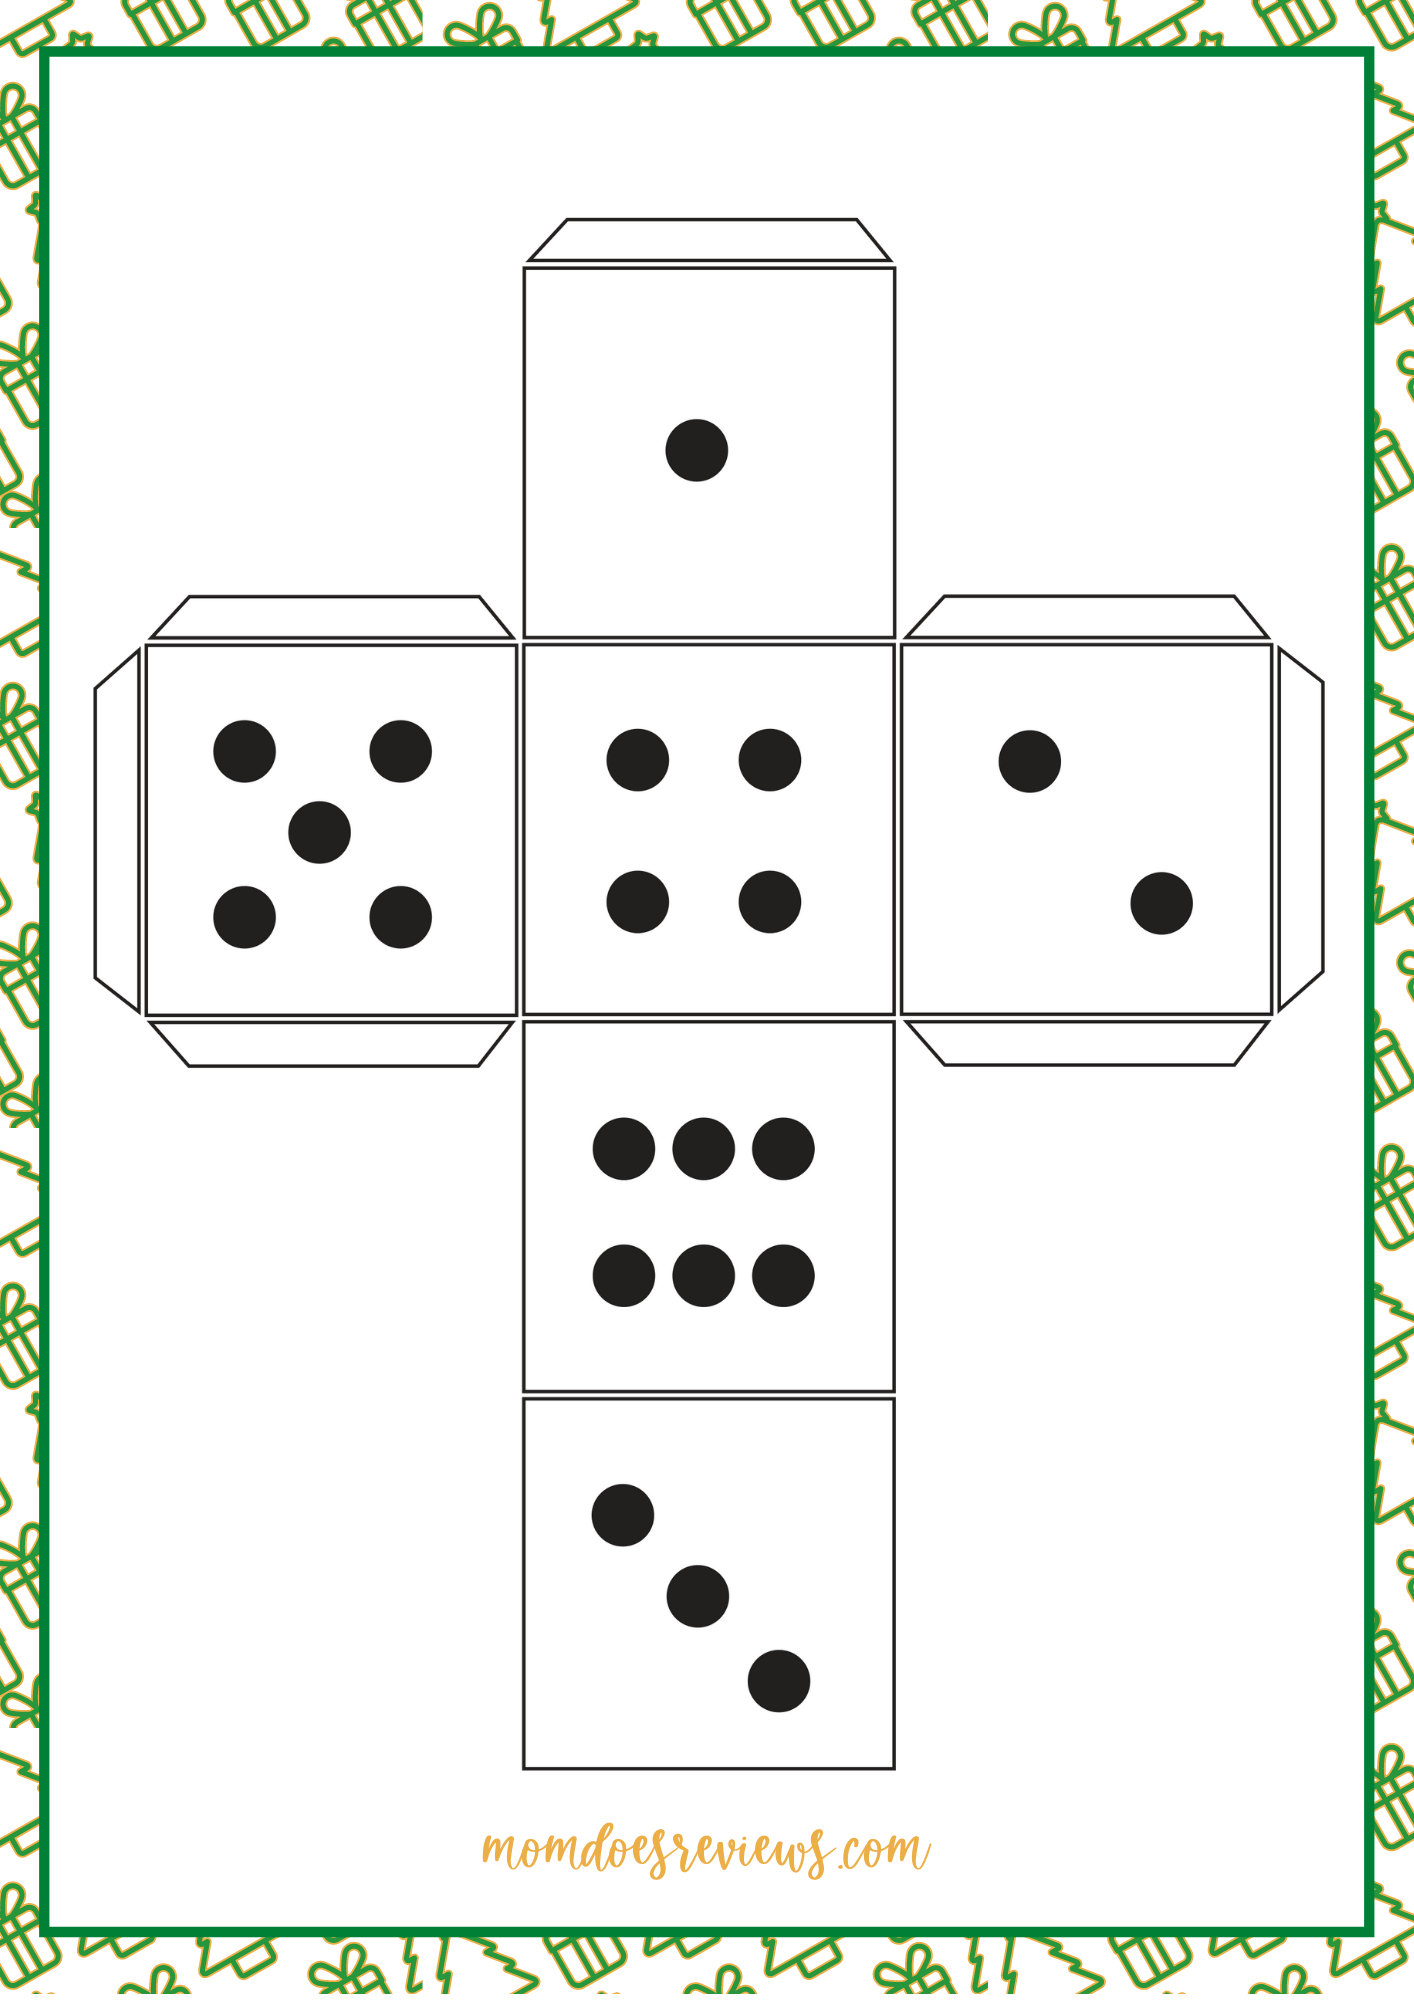 Christmas Tre Games - The Dice